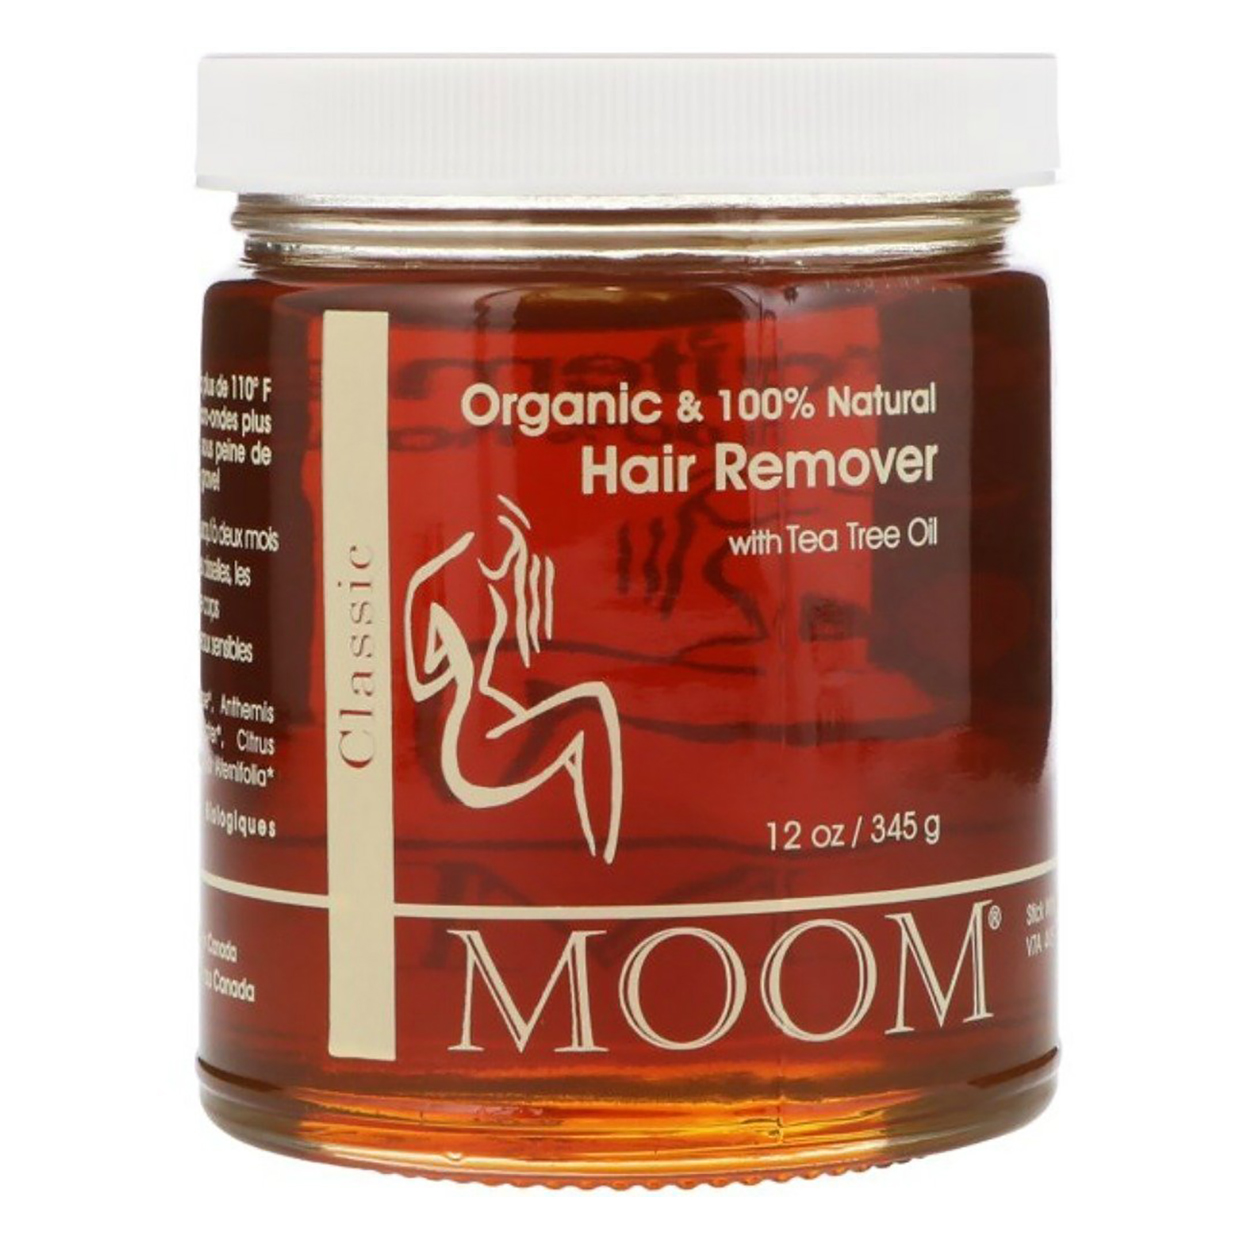 Moom Organic Hair Removal with Tea Tree Oil